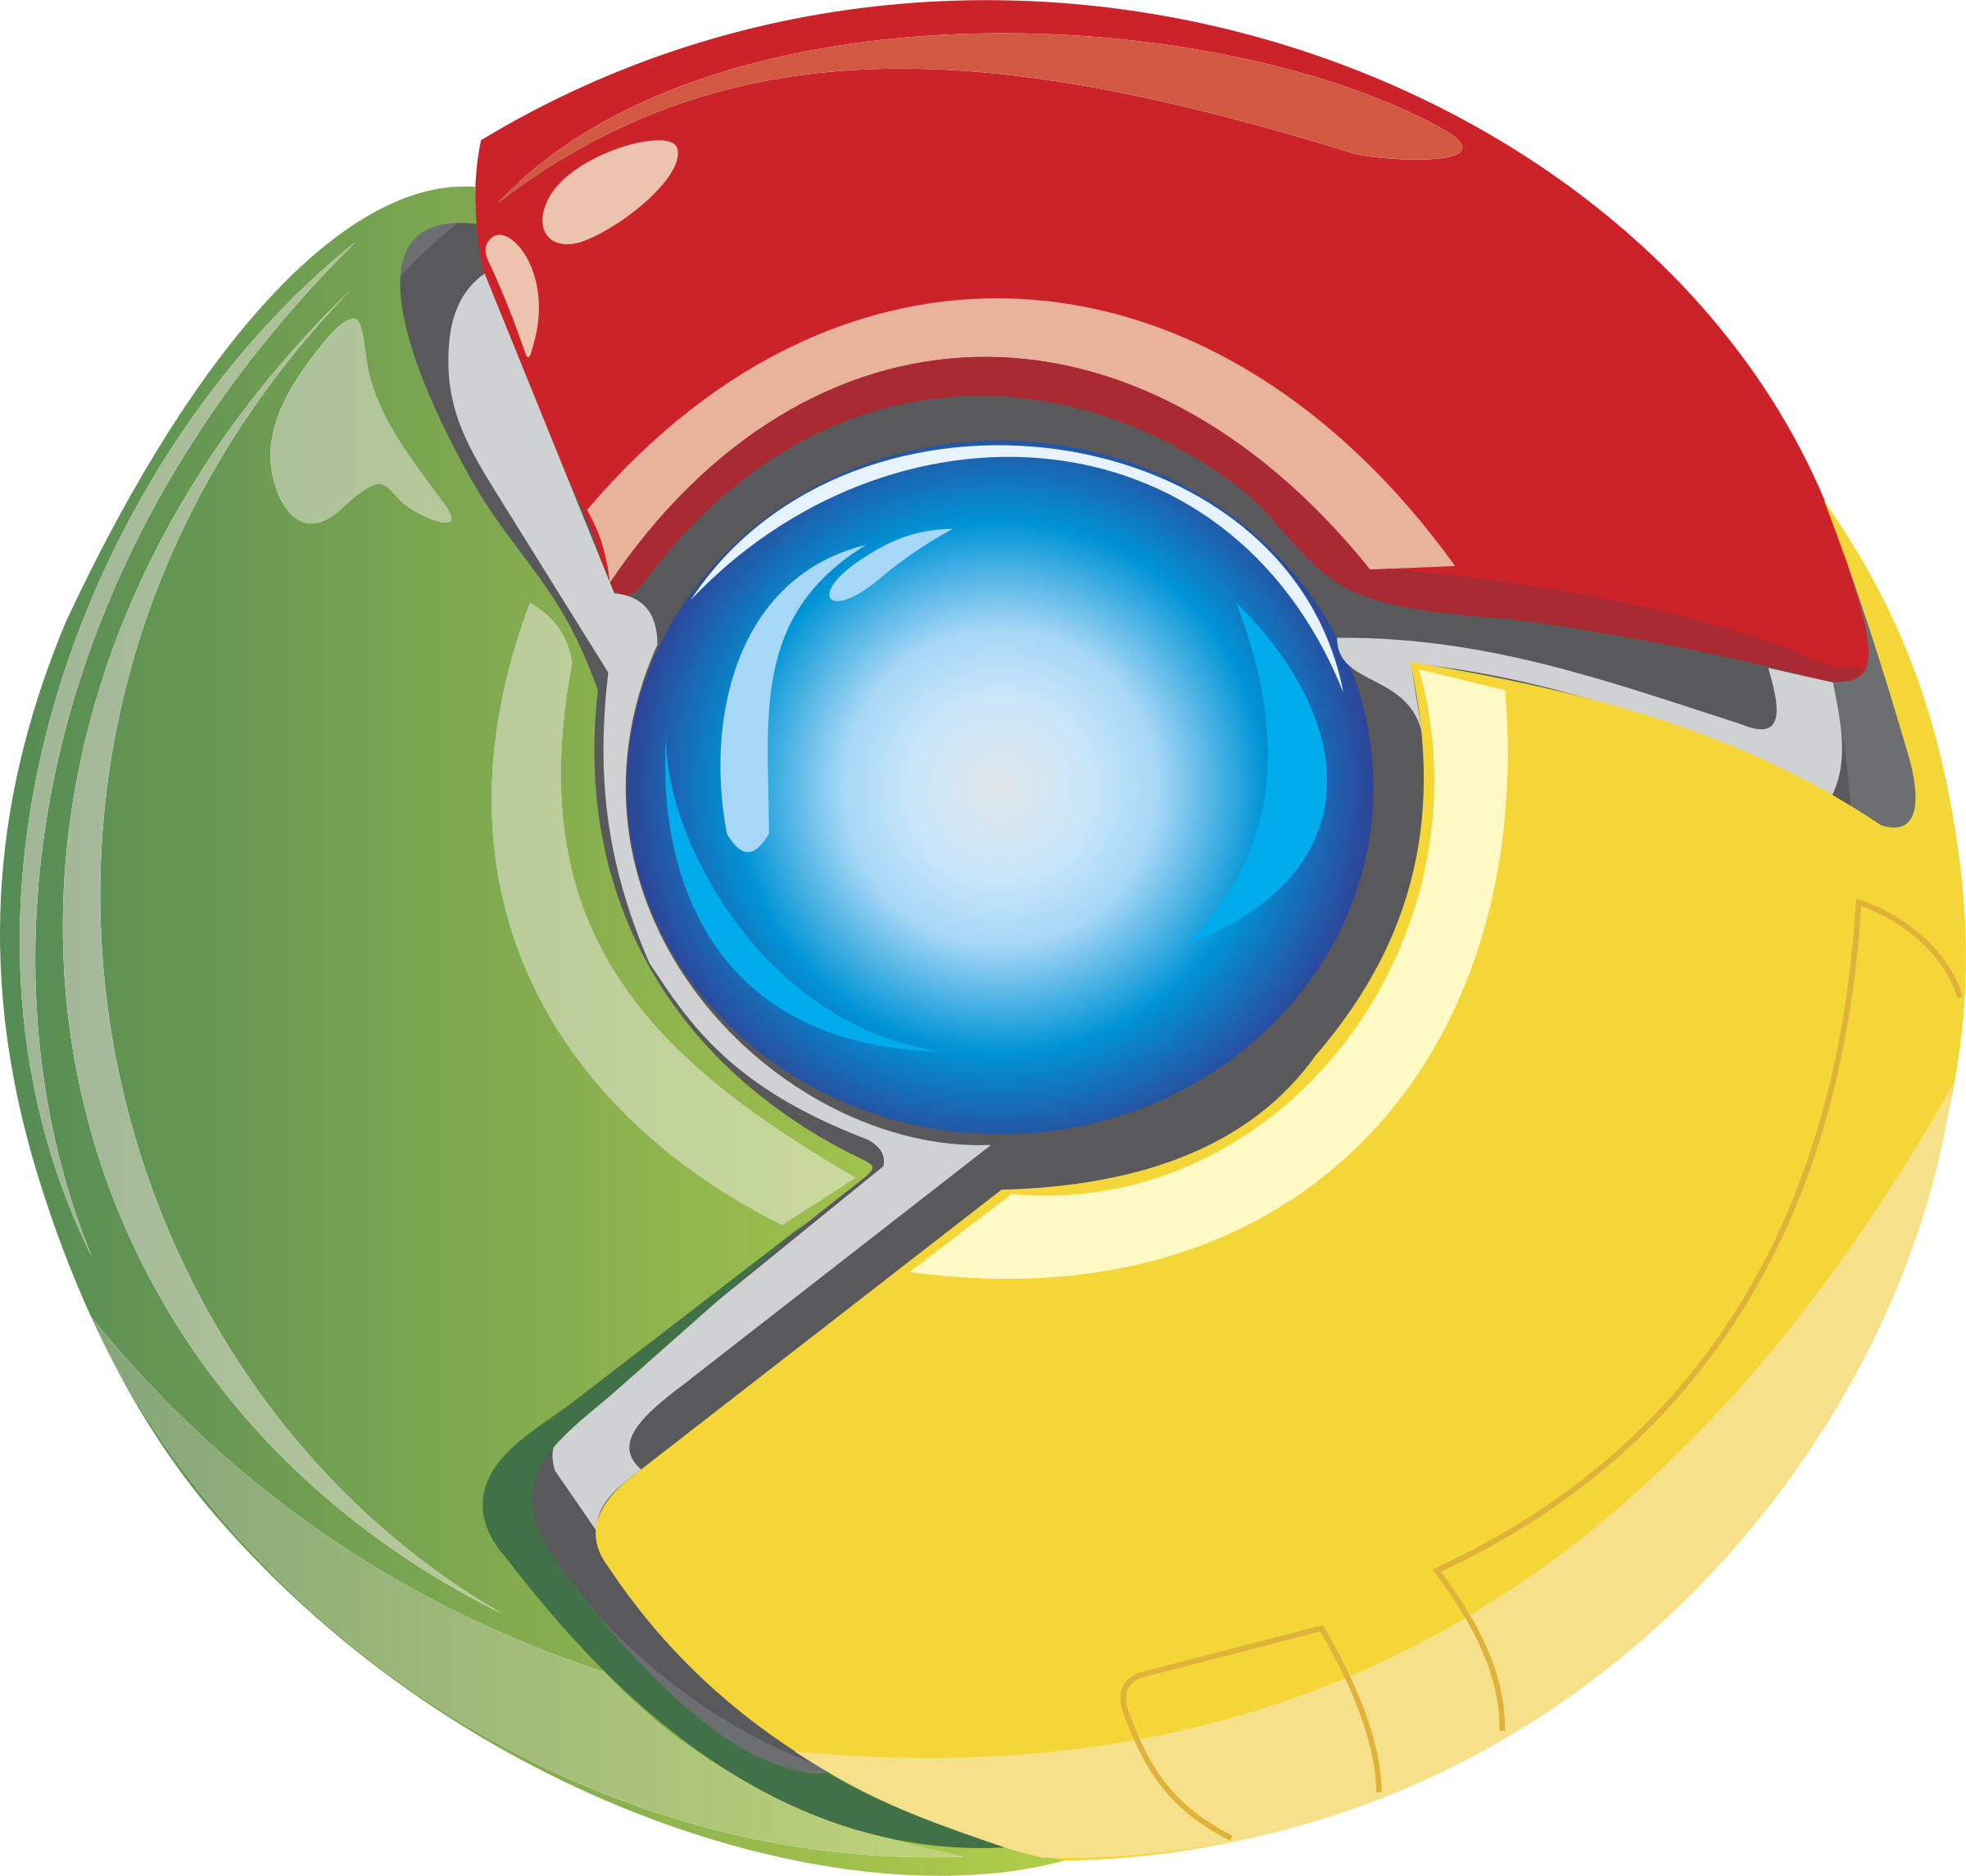 Google Computer Icons Chrome Scalable Vector Graphics PNG Image